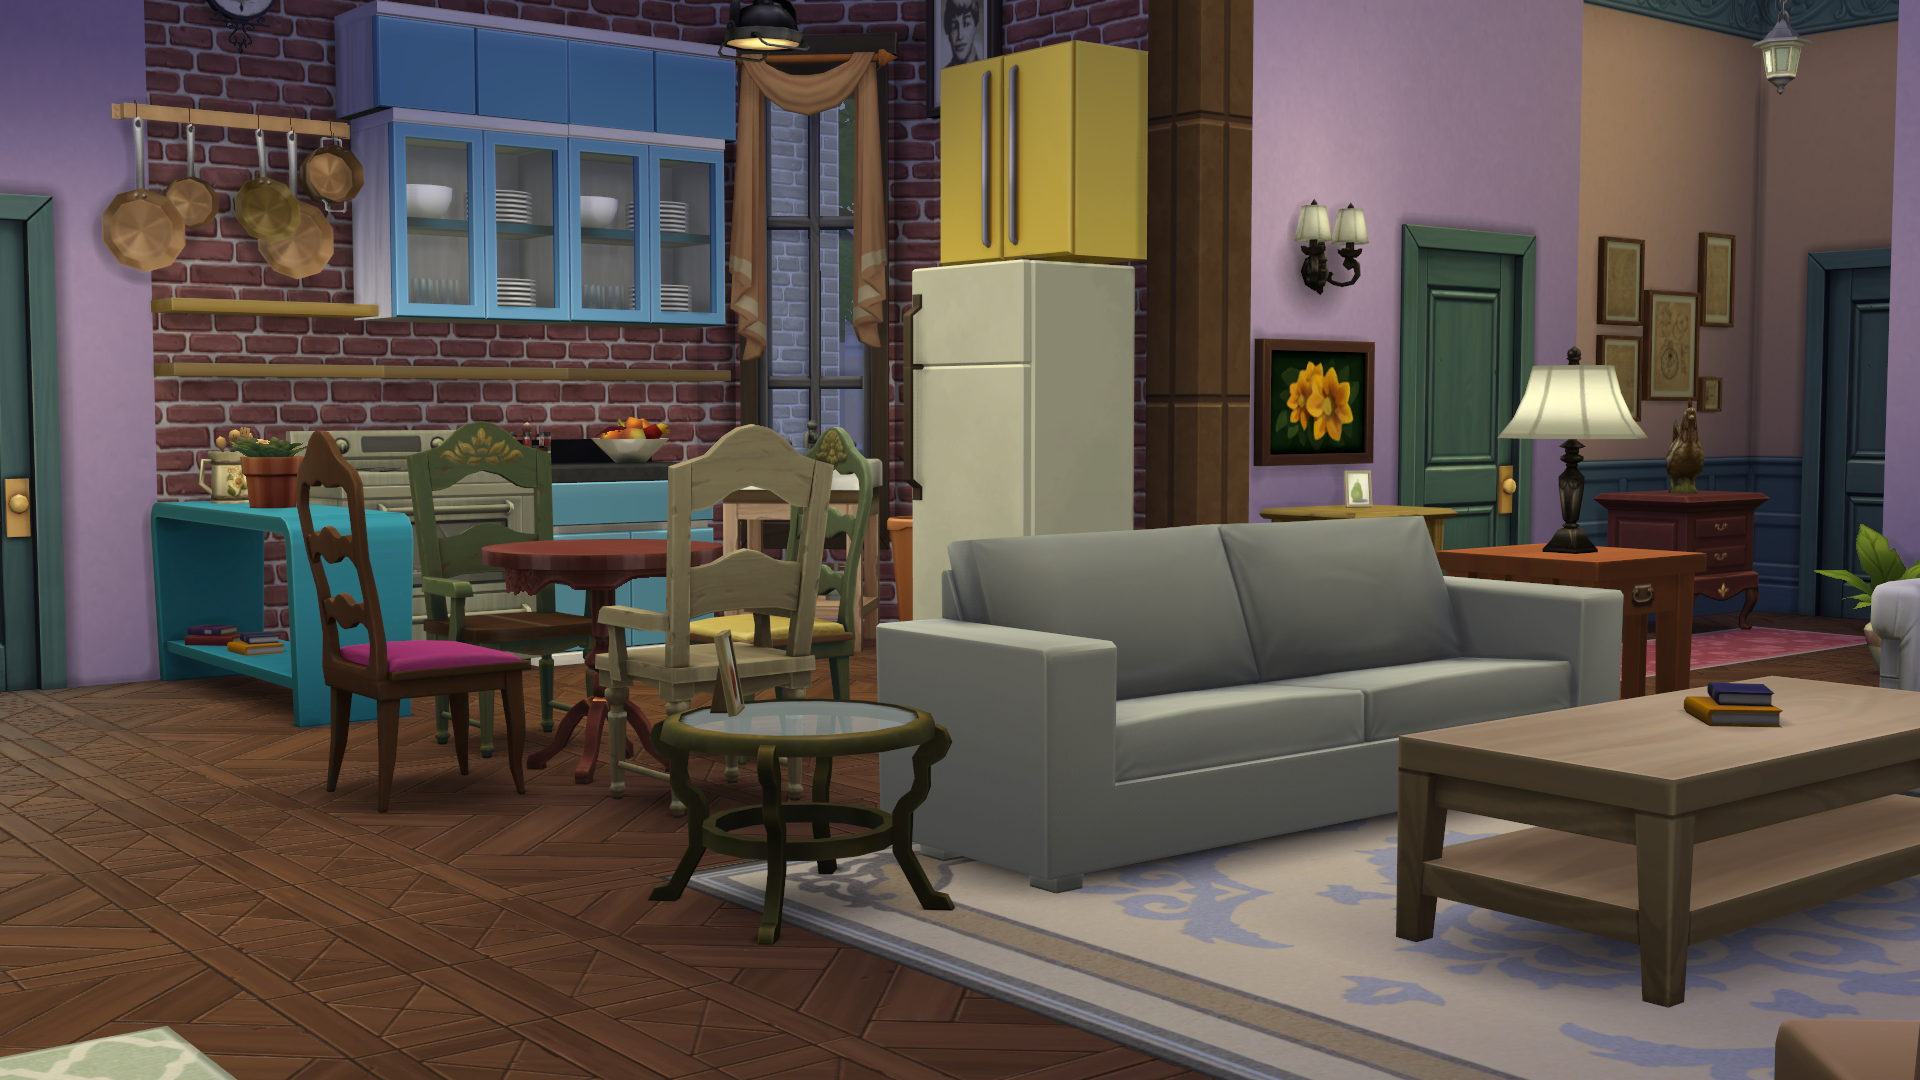 Heres How Friends Apartment Looks Like In The Sims 4